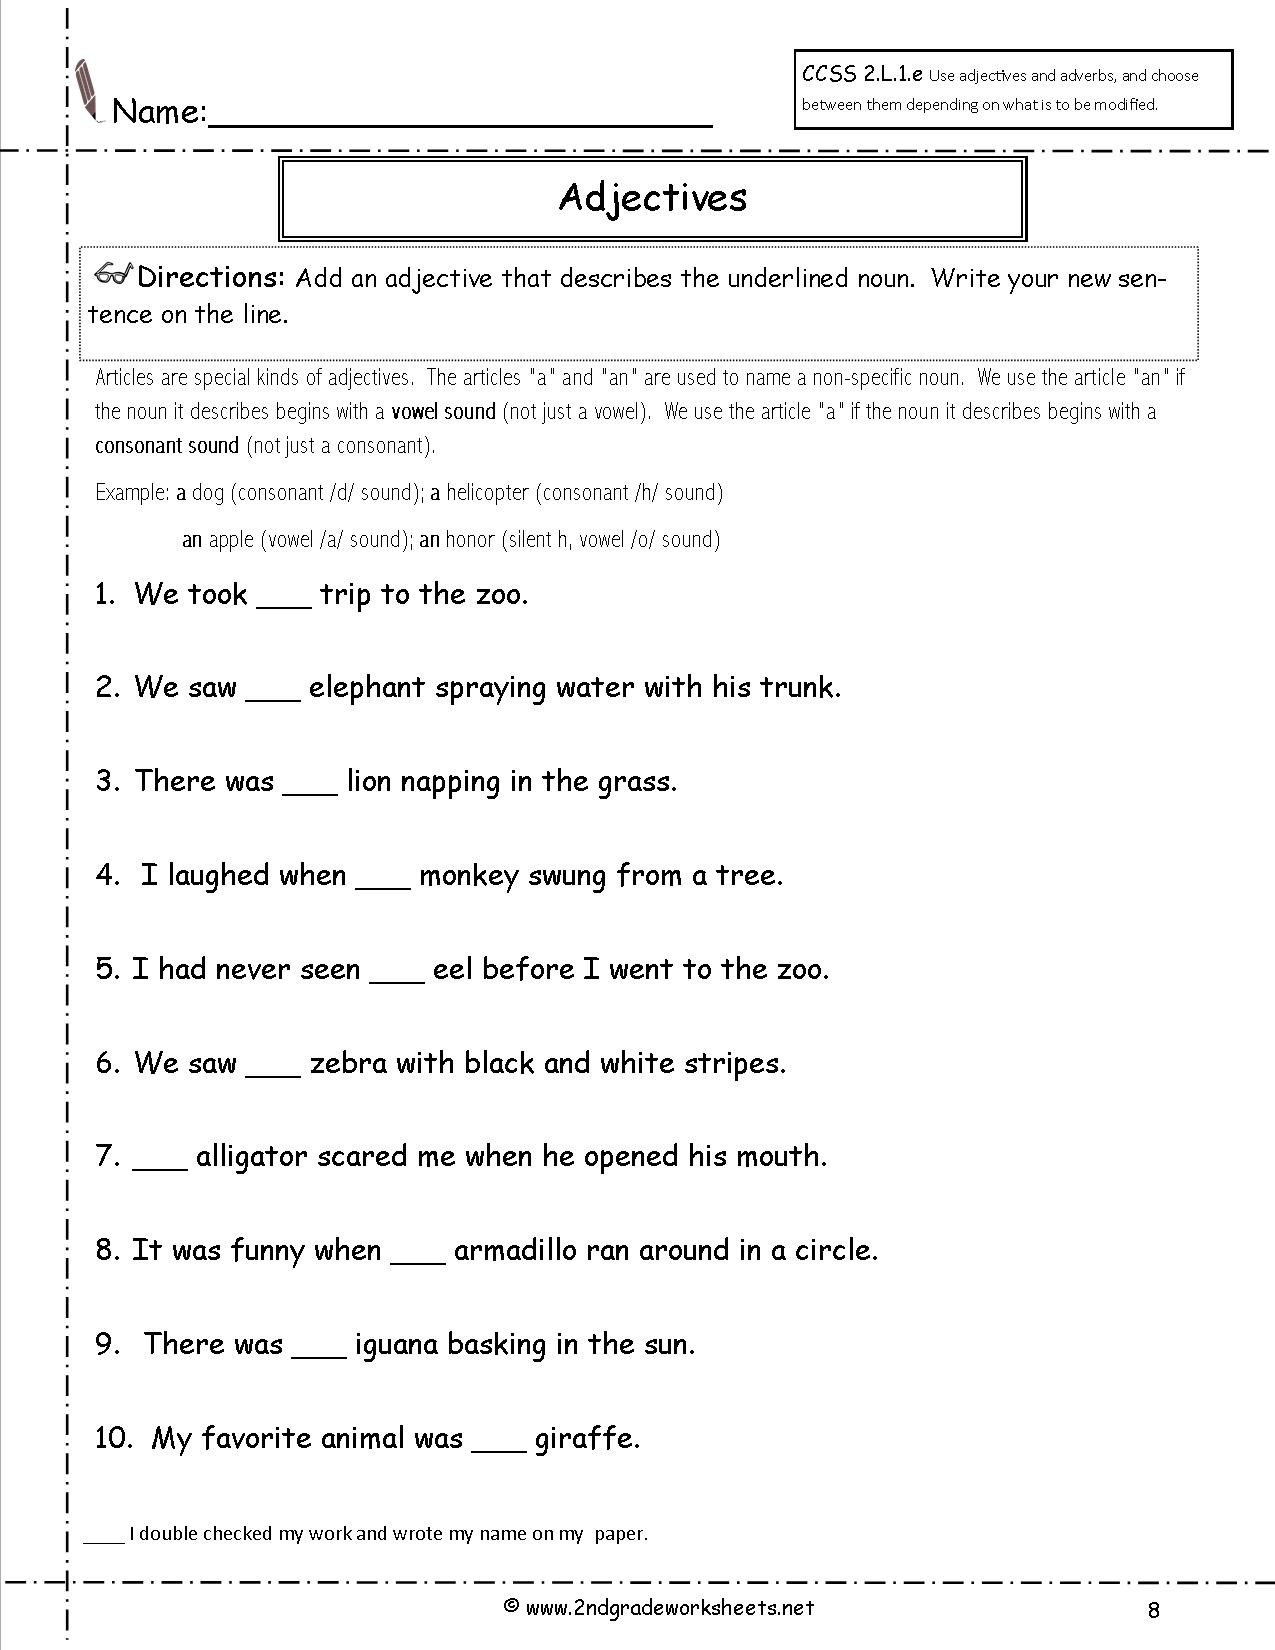 Adjectives And Articles Worksheets Grade 6